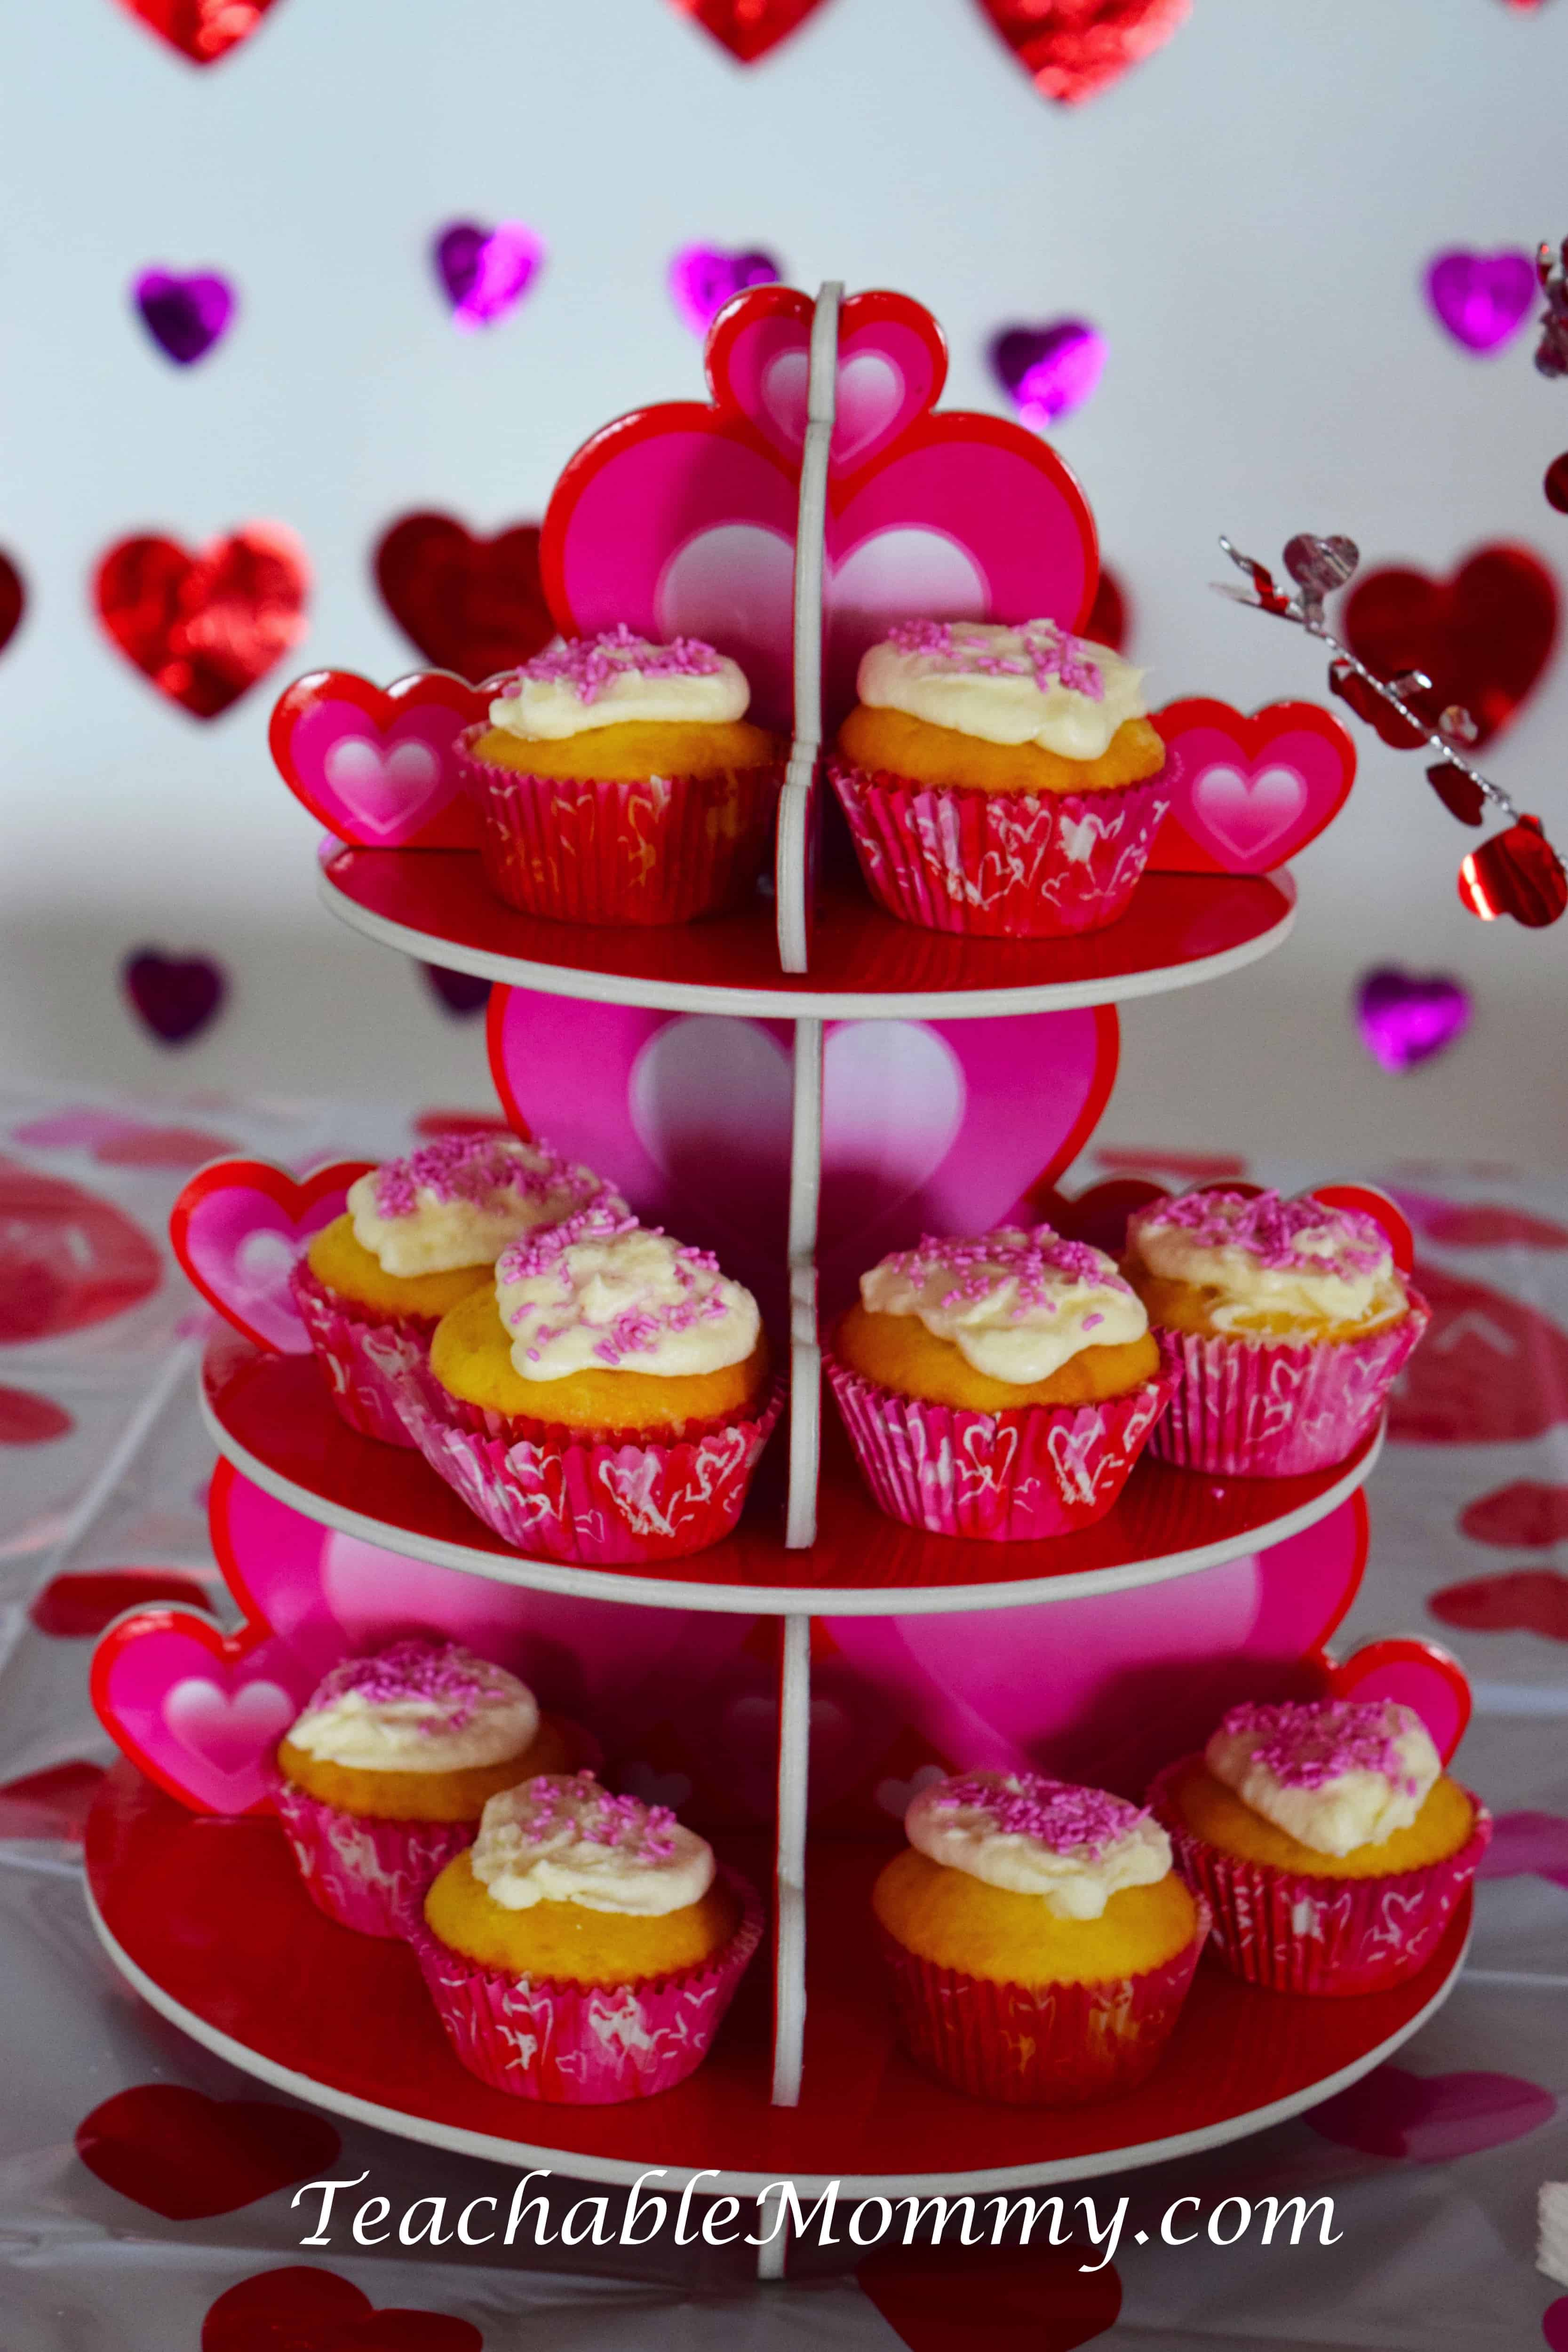 Valentine 39 s day party teachable mommy for Valentines day party foods